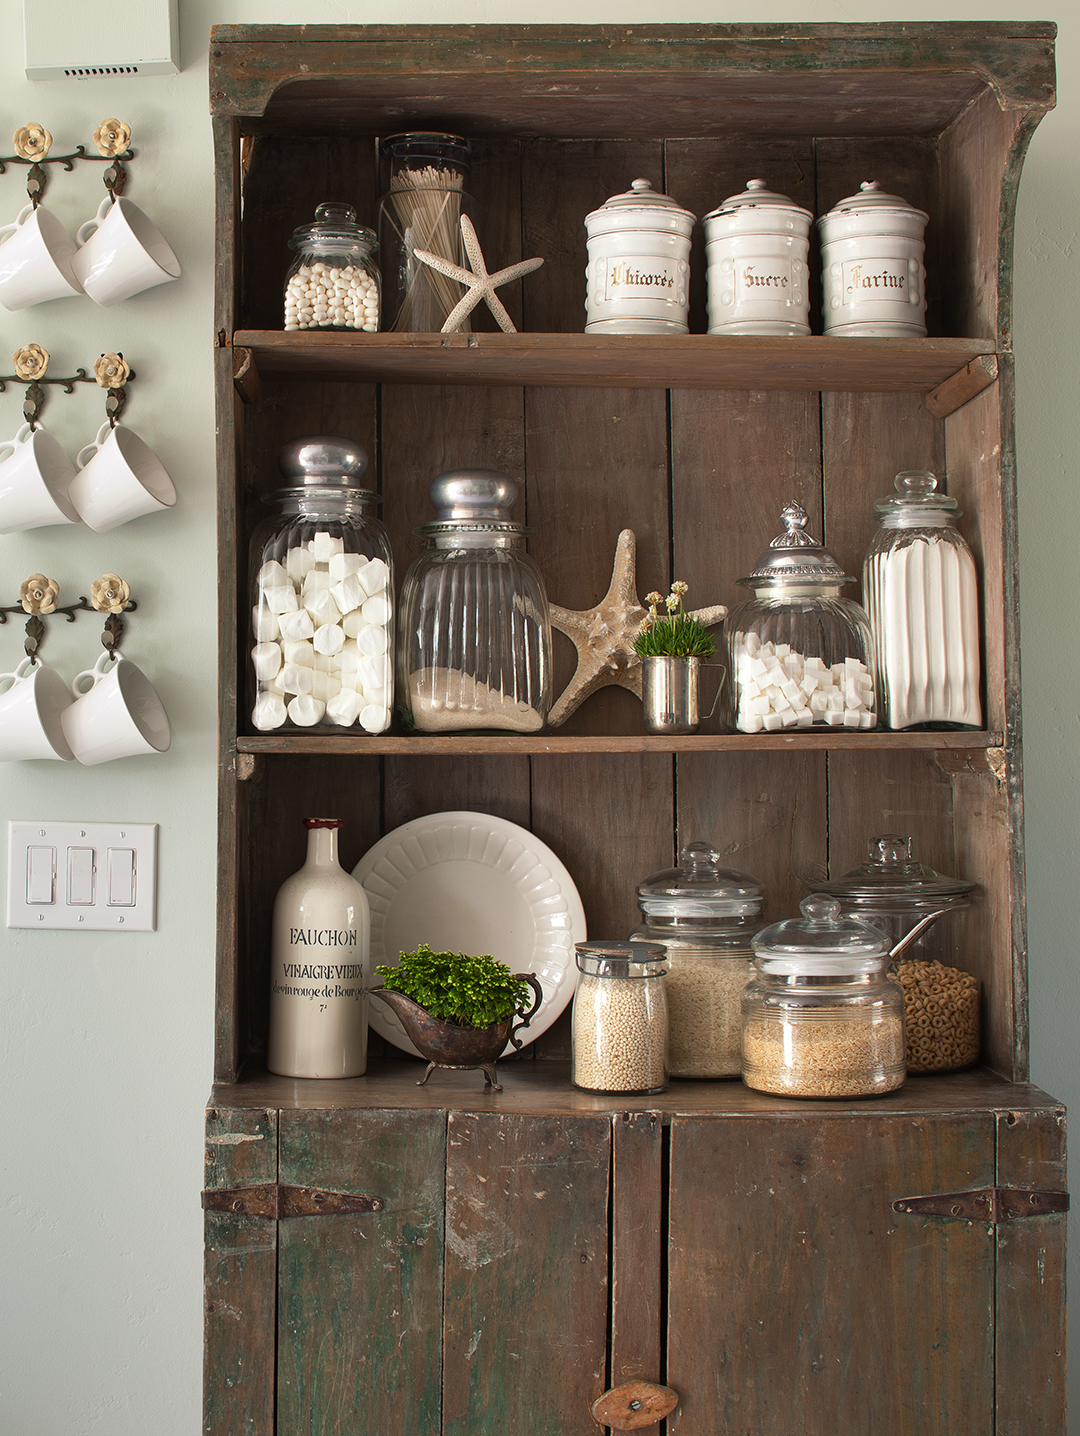 hutch with jars and containers